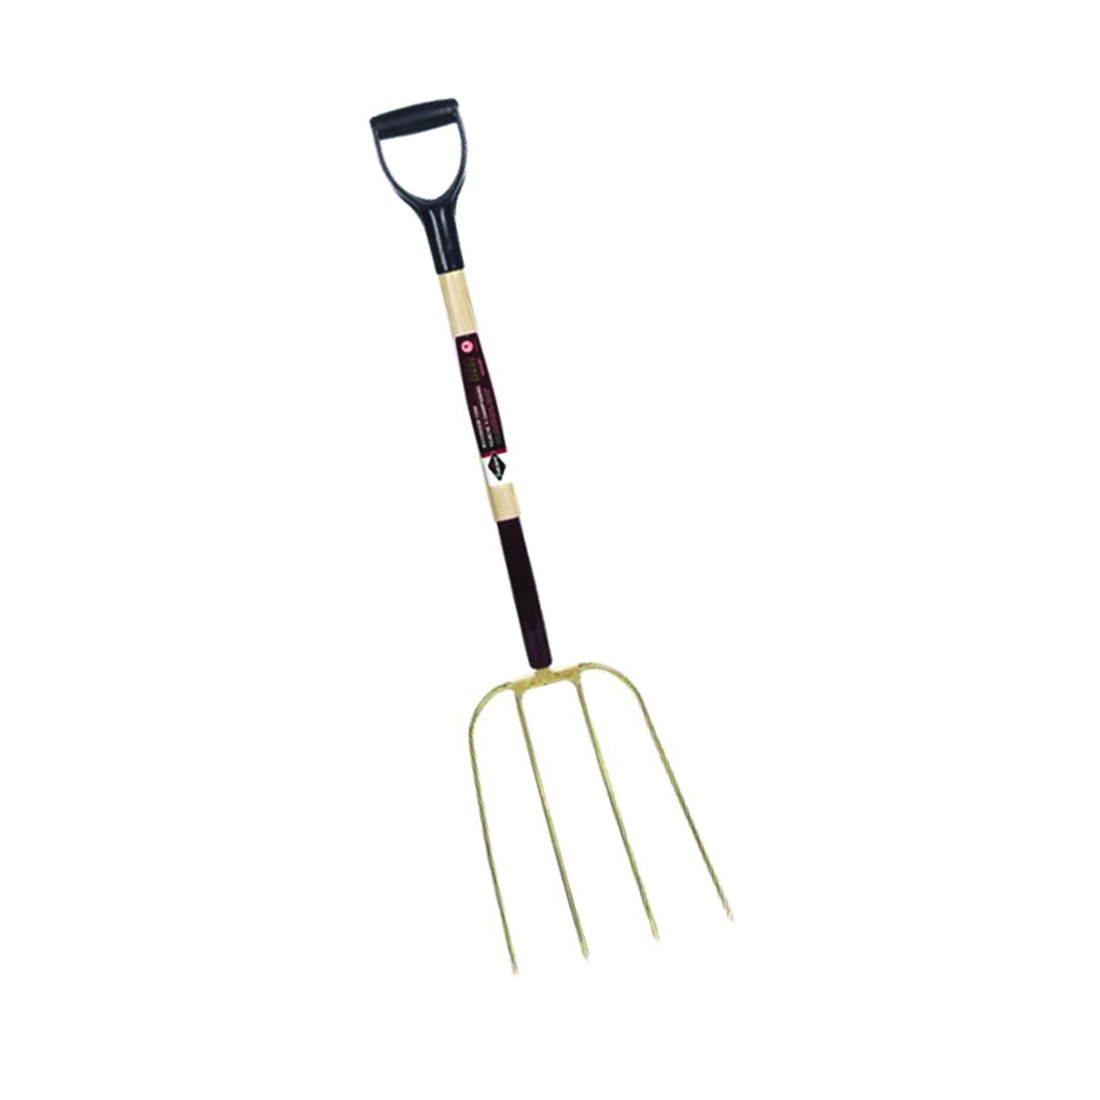 Picture of GARANT G0415DU Mushroom Fork, 4 -Tine, Steel Tine, Gold, 30 in L Handle